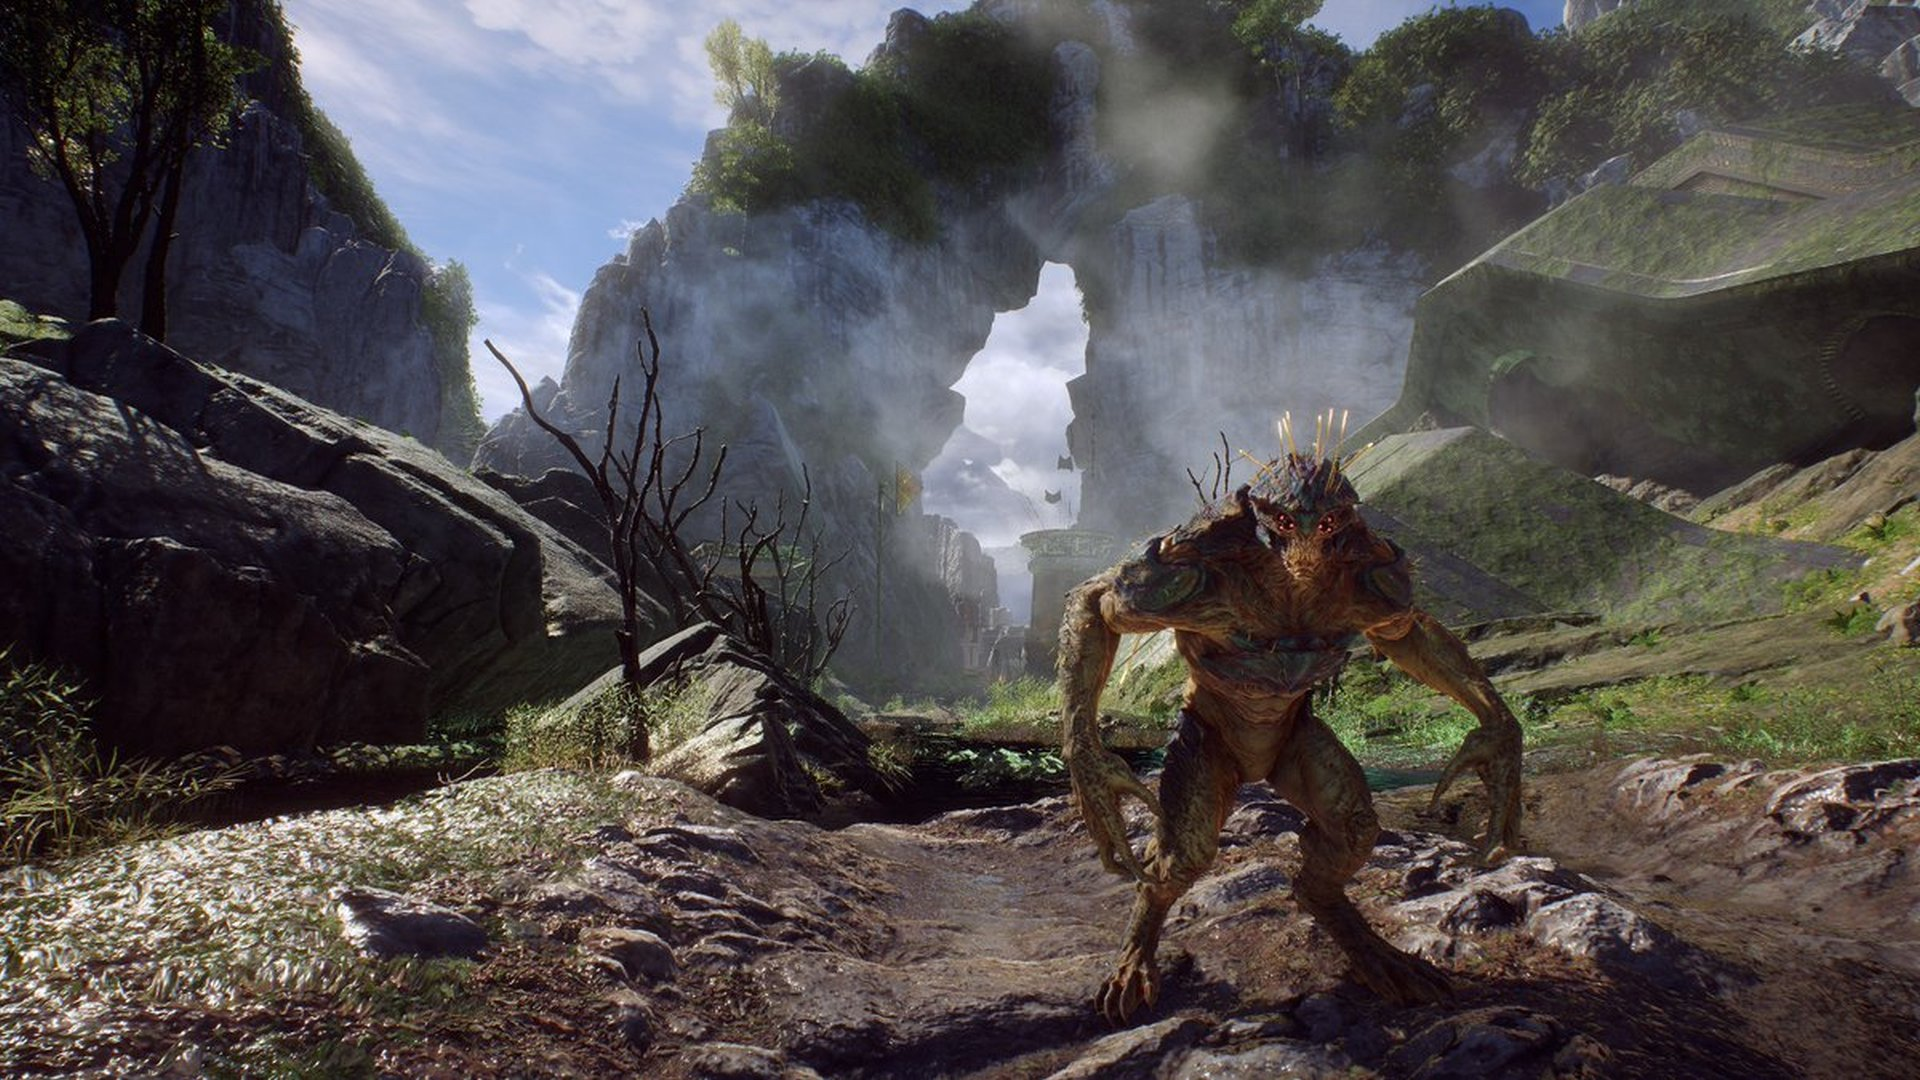 Hands On: ANTHEM Shows Promise in VIP Demo, But the Finished Game